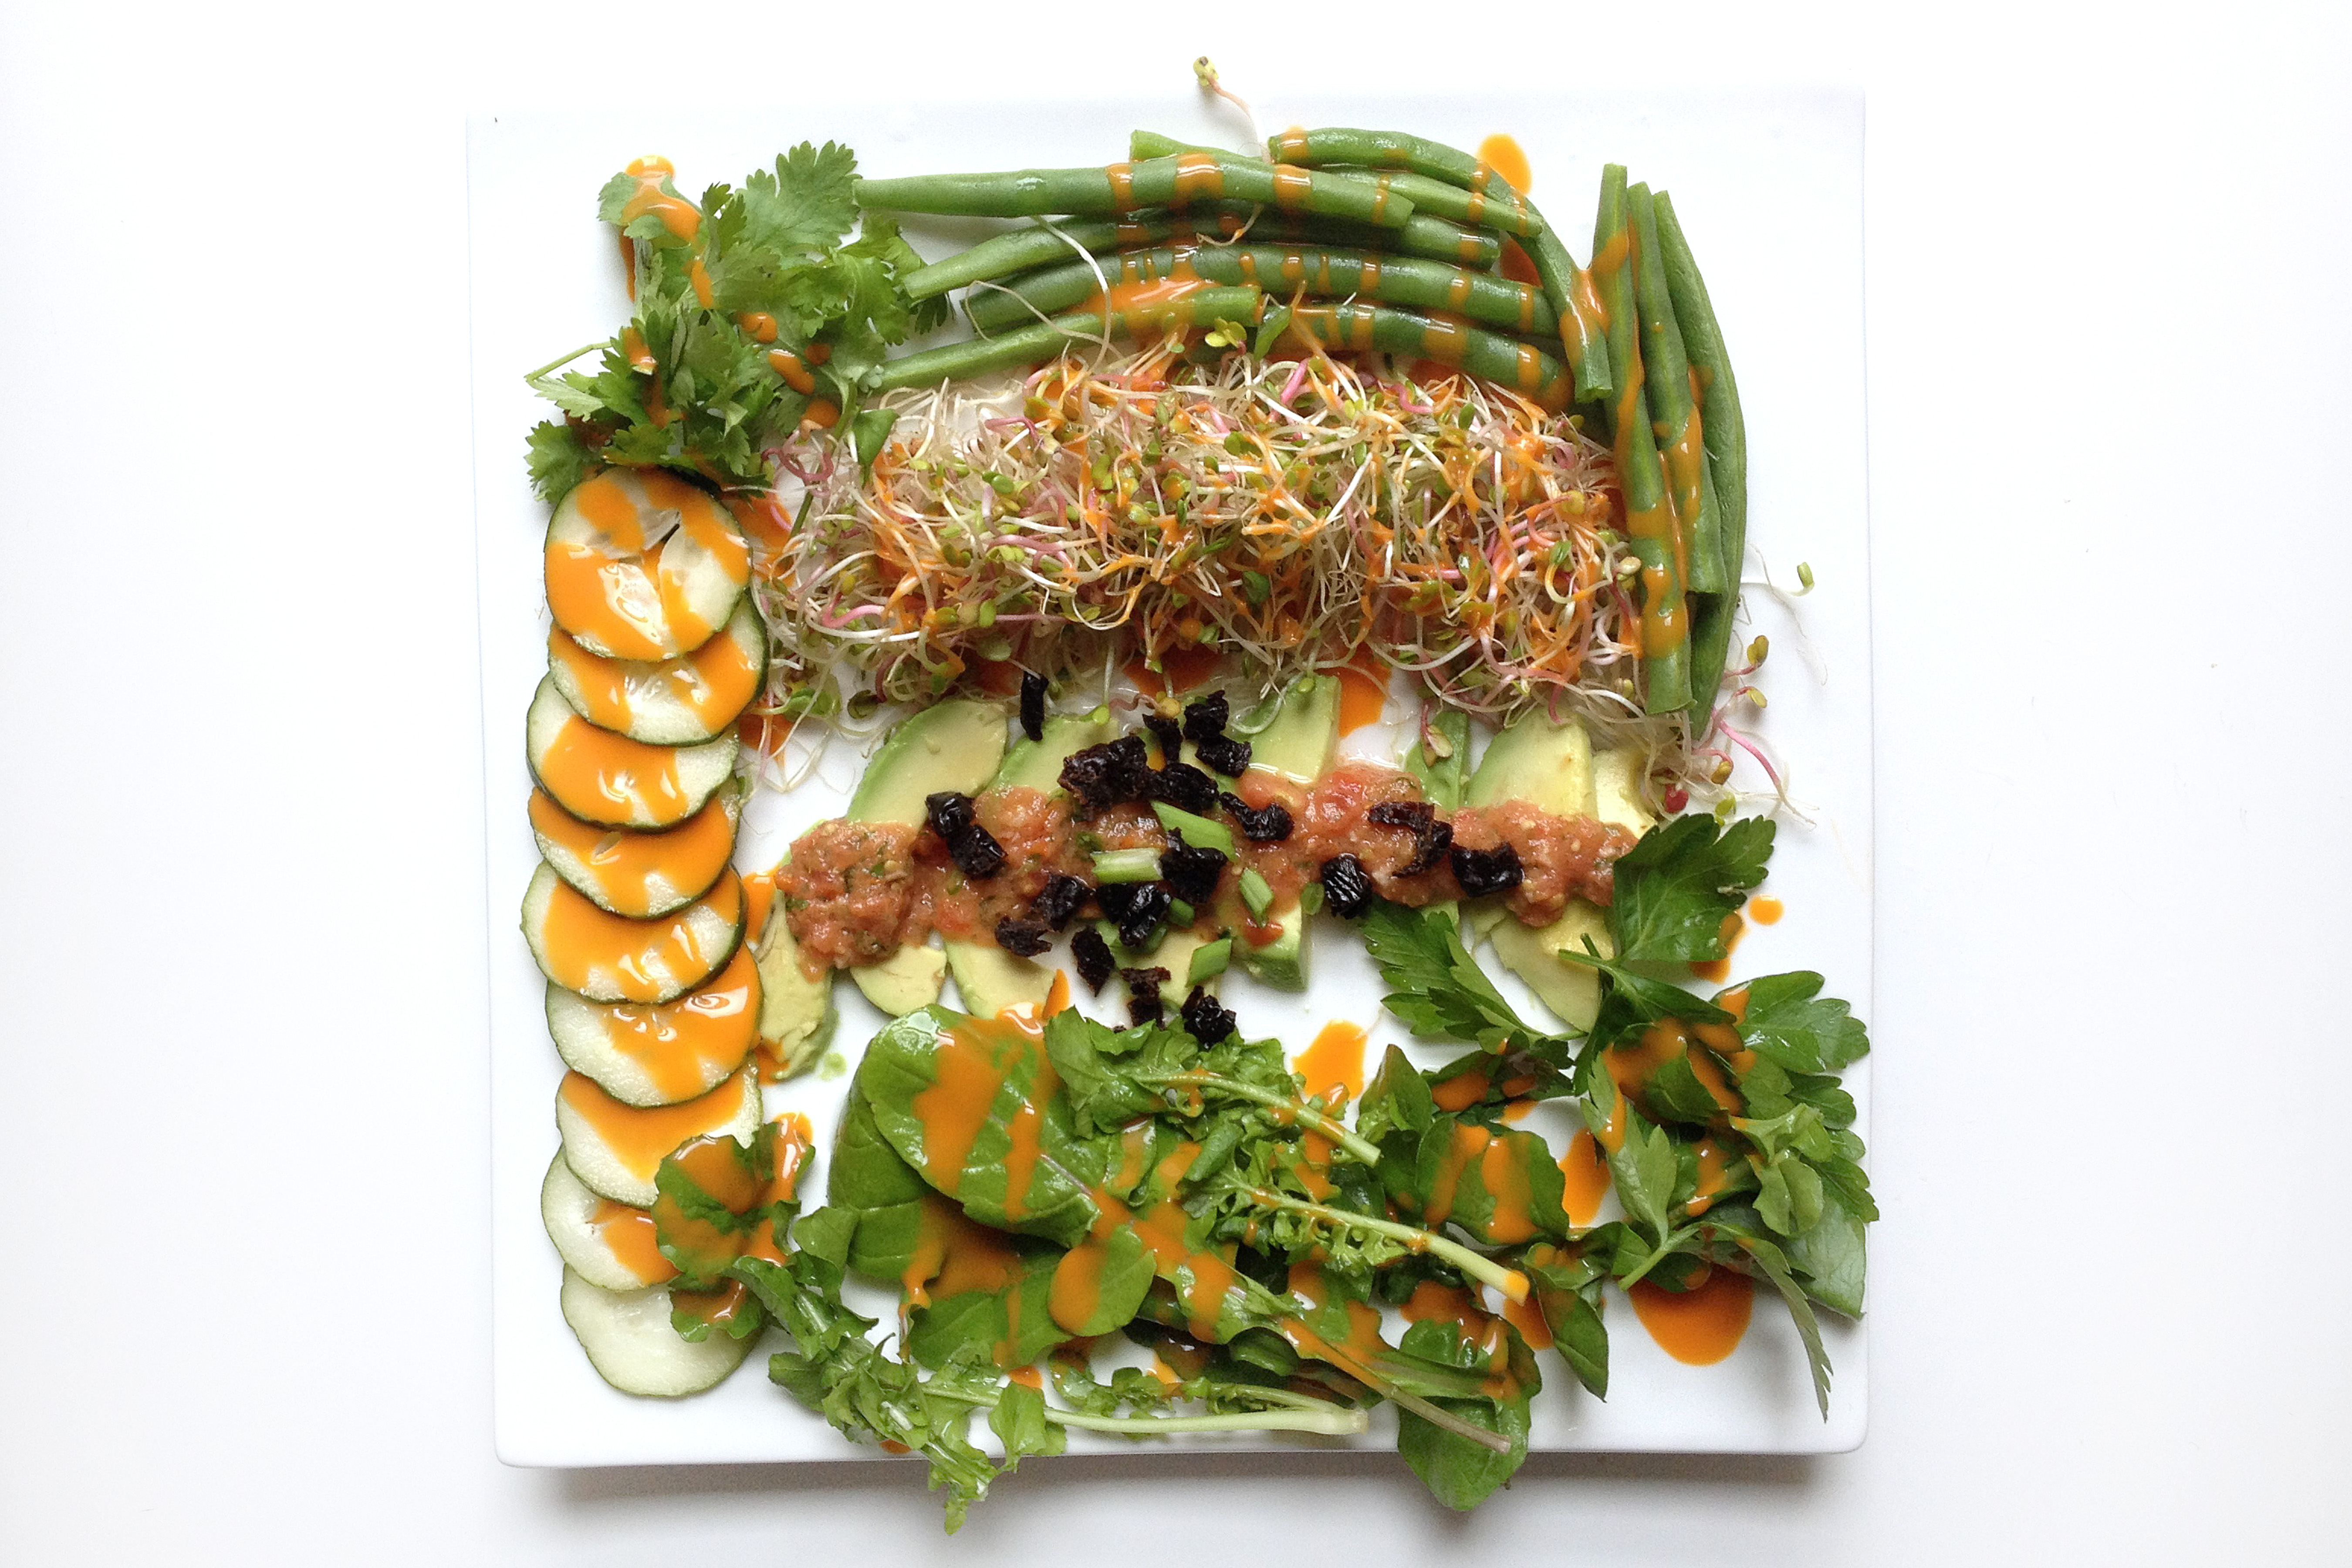 Easy raw vegan meal plans livestrong forumfinder Gallery